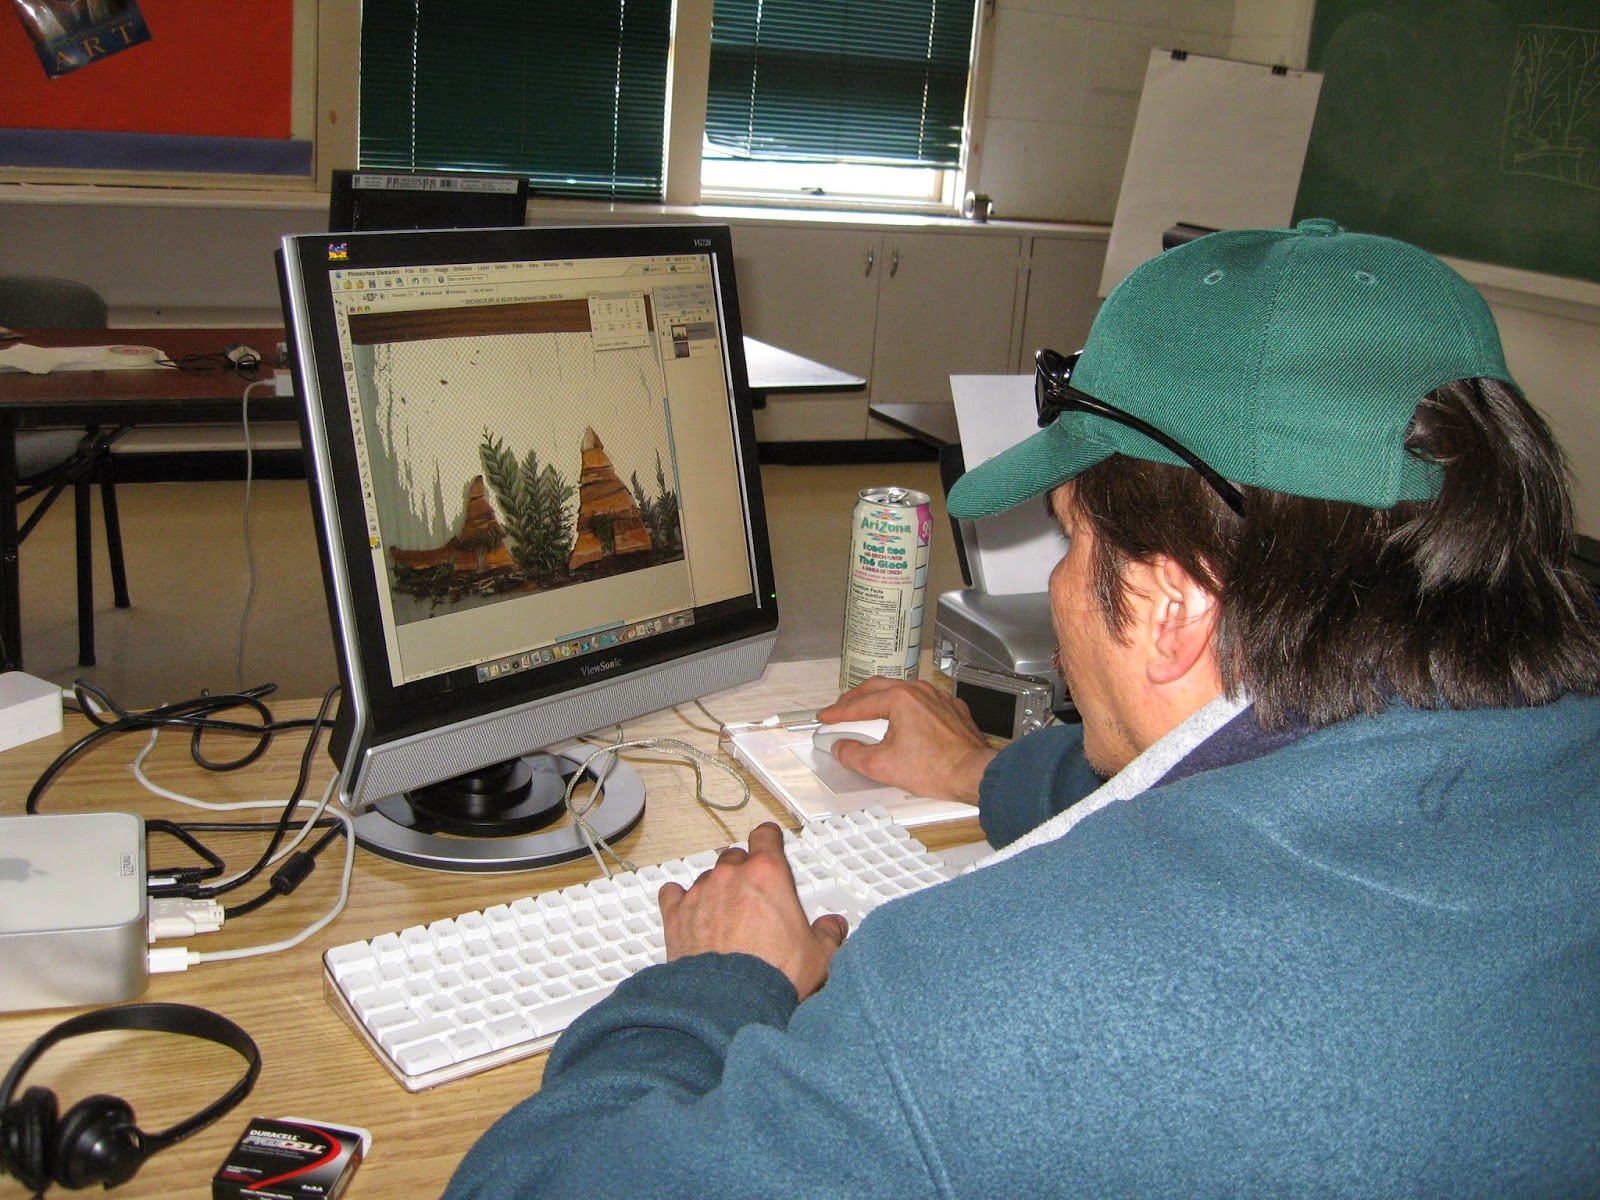 Marvin creating his collage imagery in photoshop